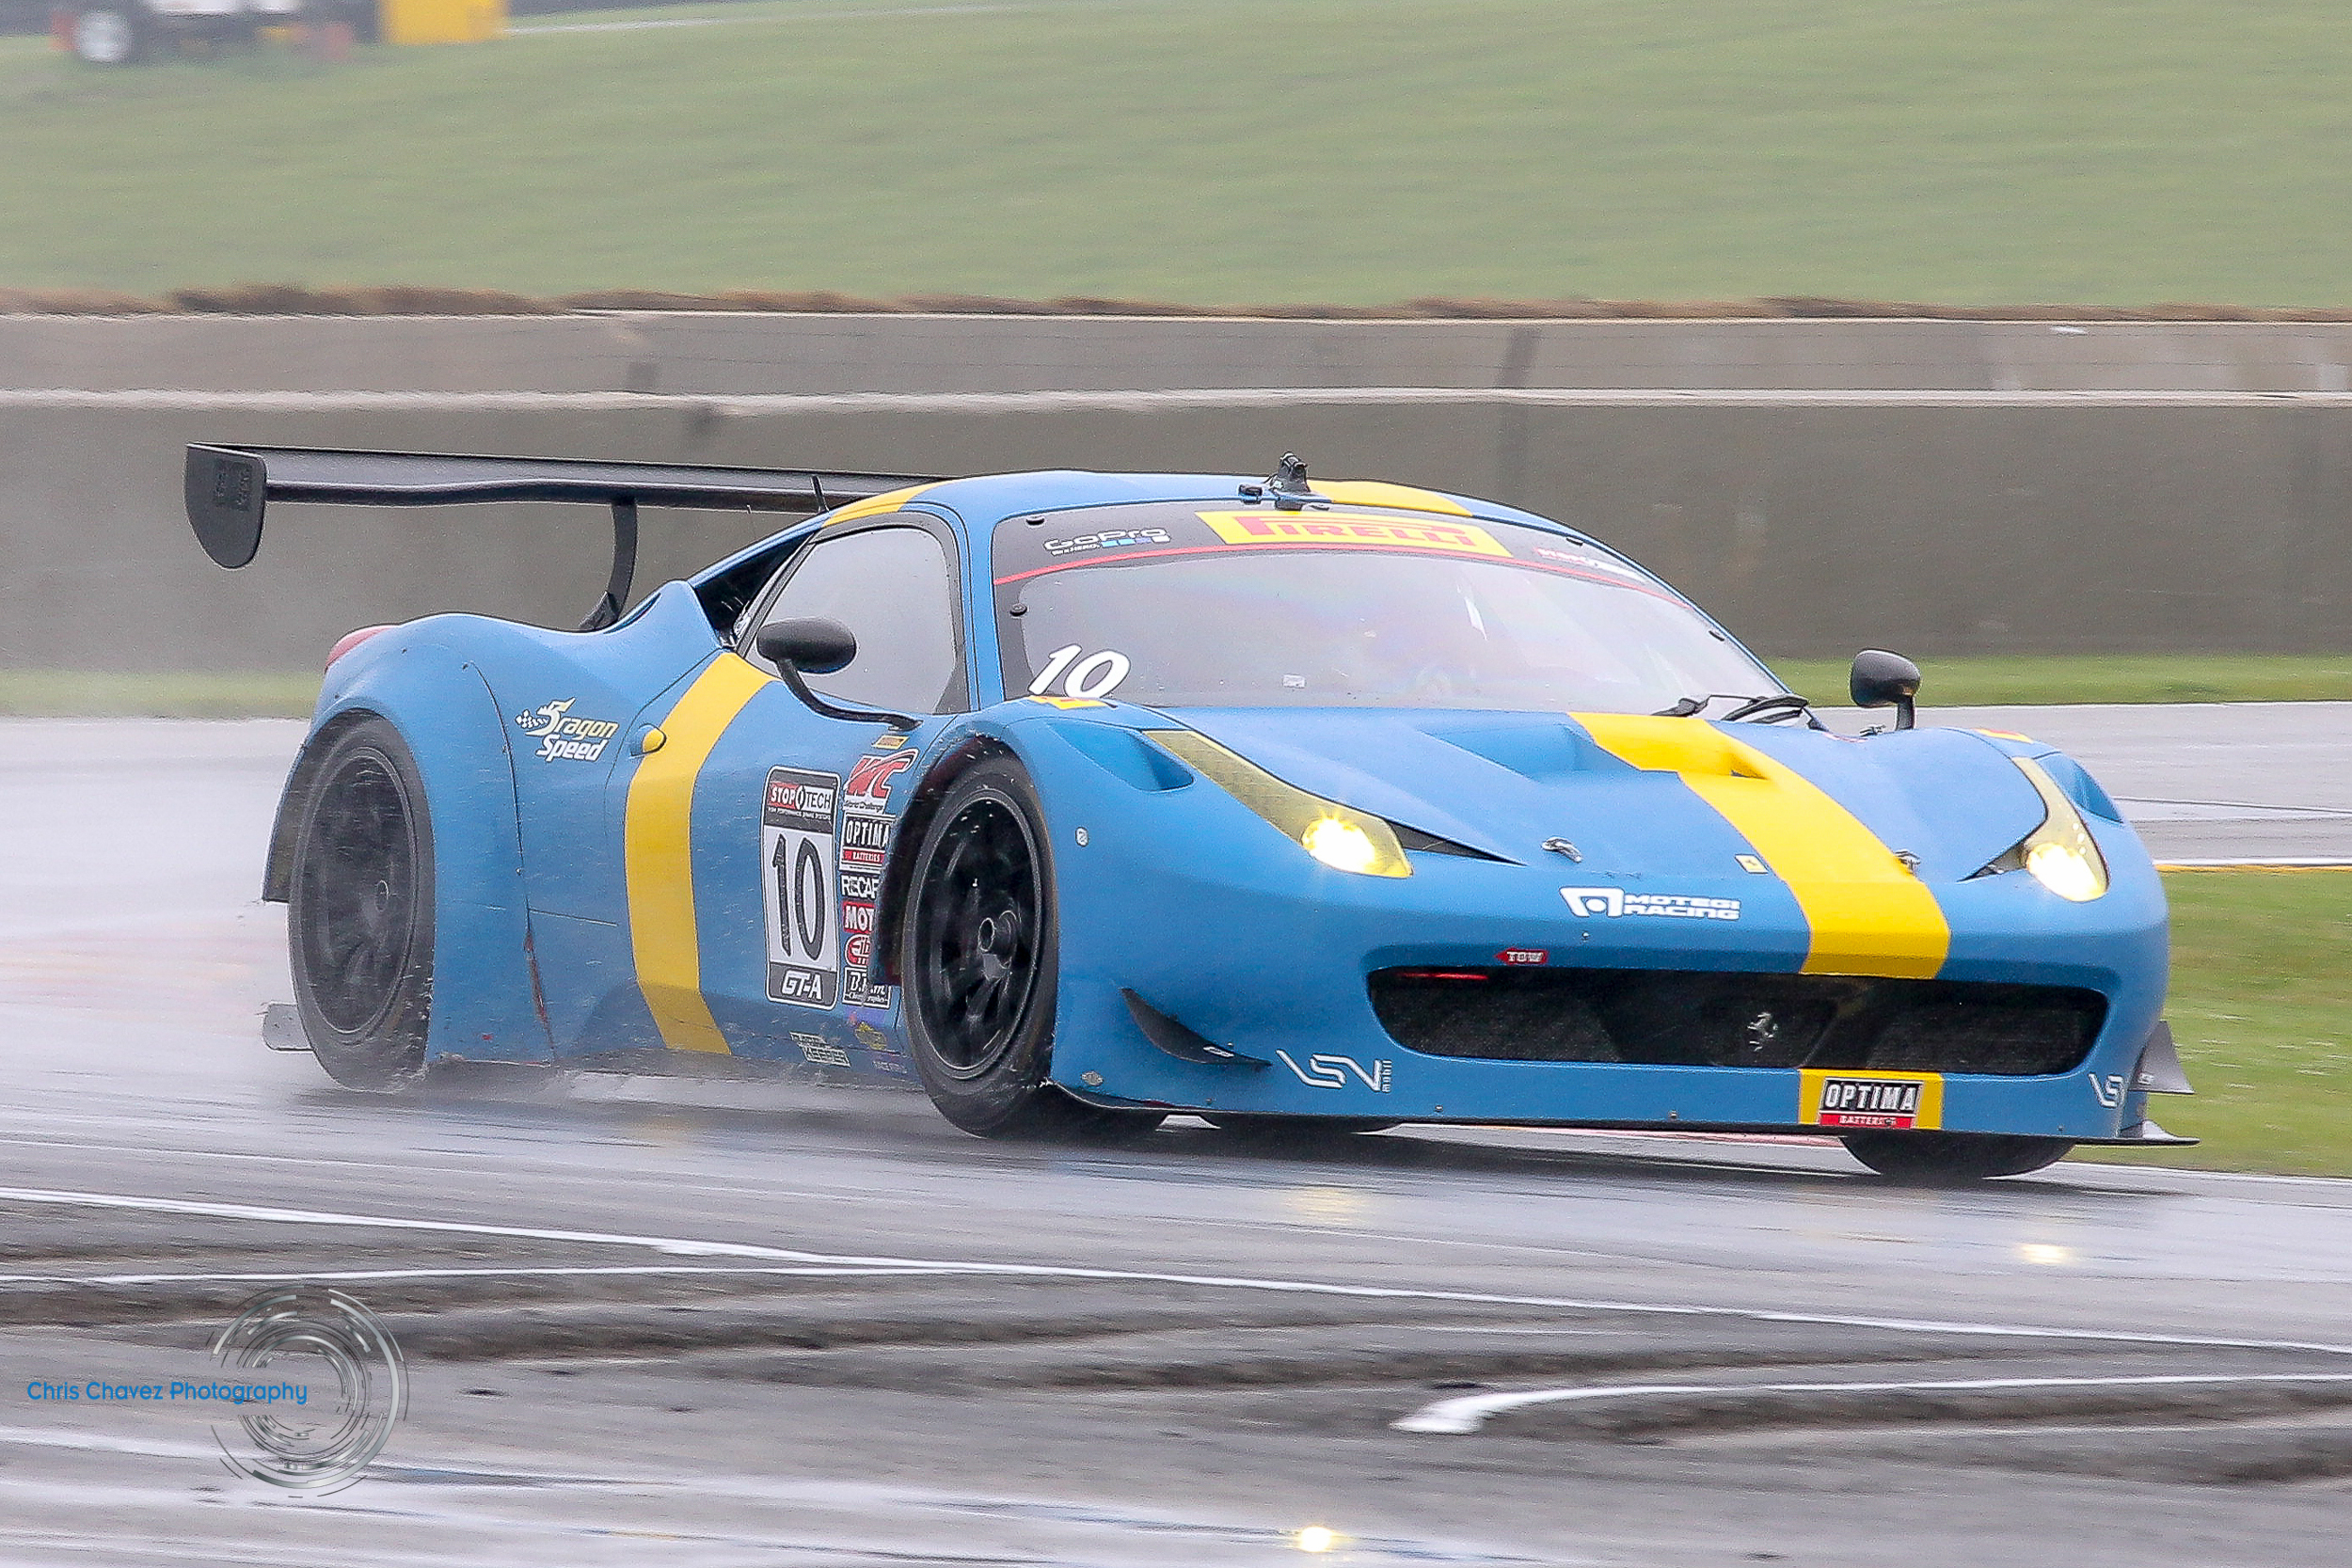 #10 Henrick Hedman racing with Dragon Speed in the Ferrari 458 GT3